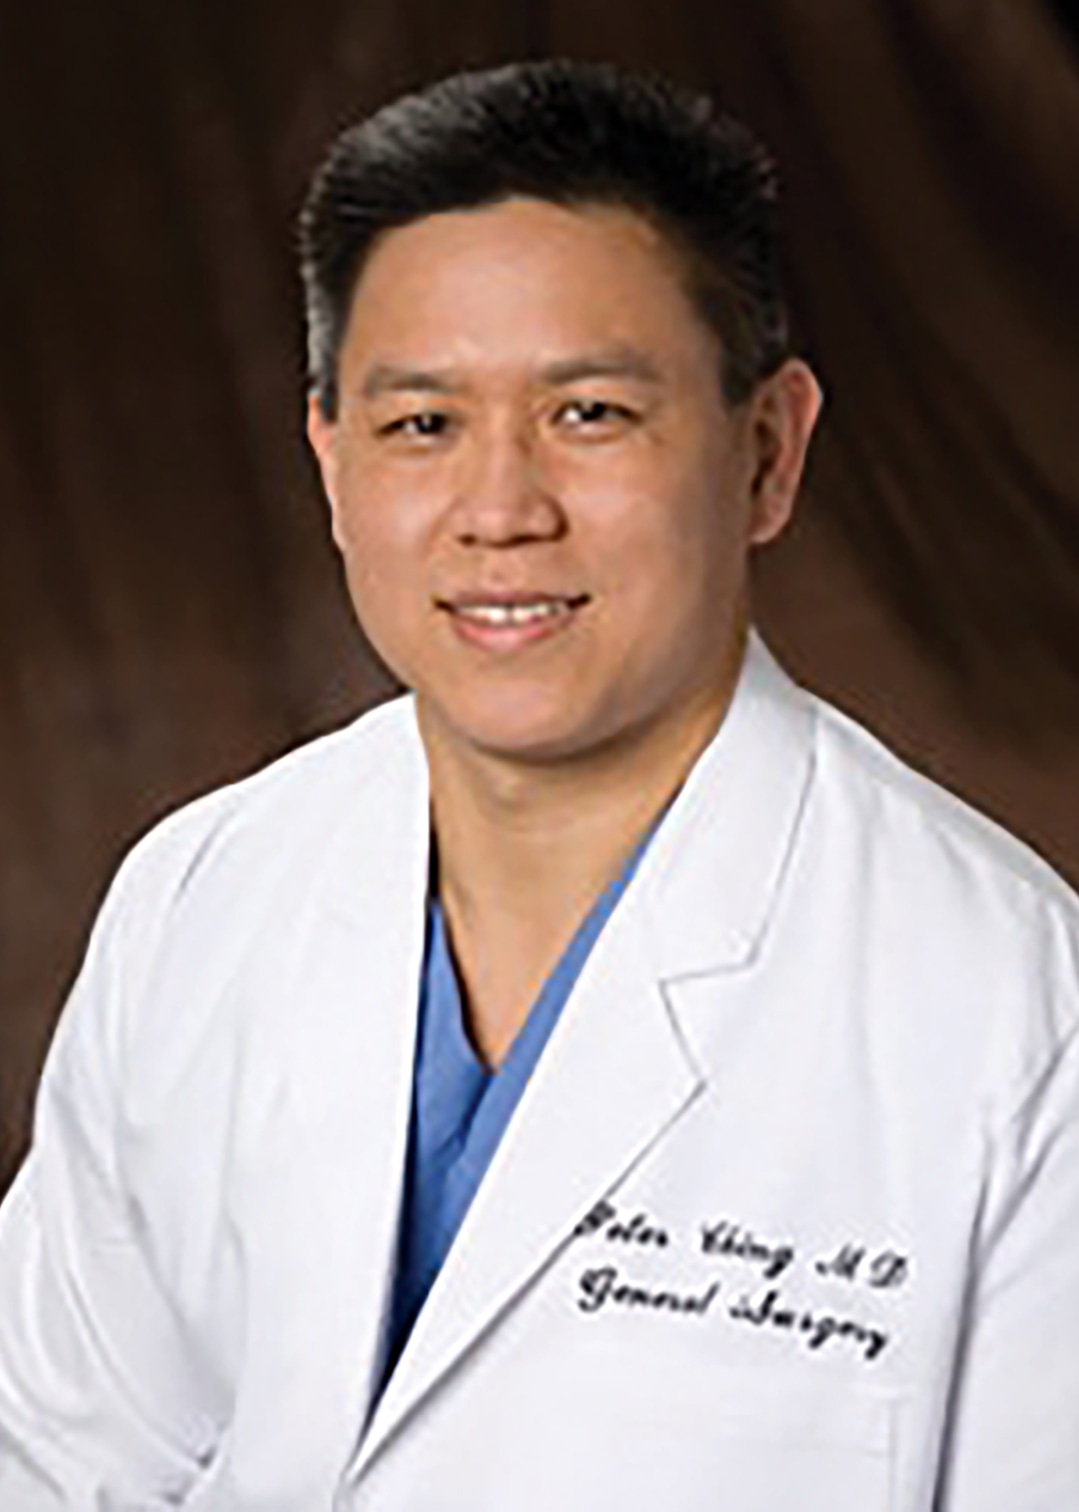 Dr. Peter V. Ching, F.A.C.S (Top Doc)